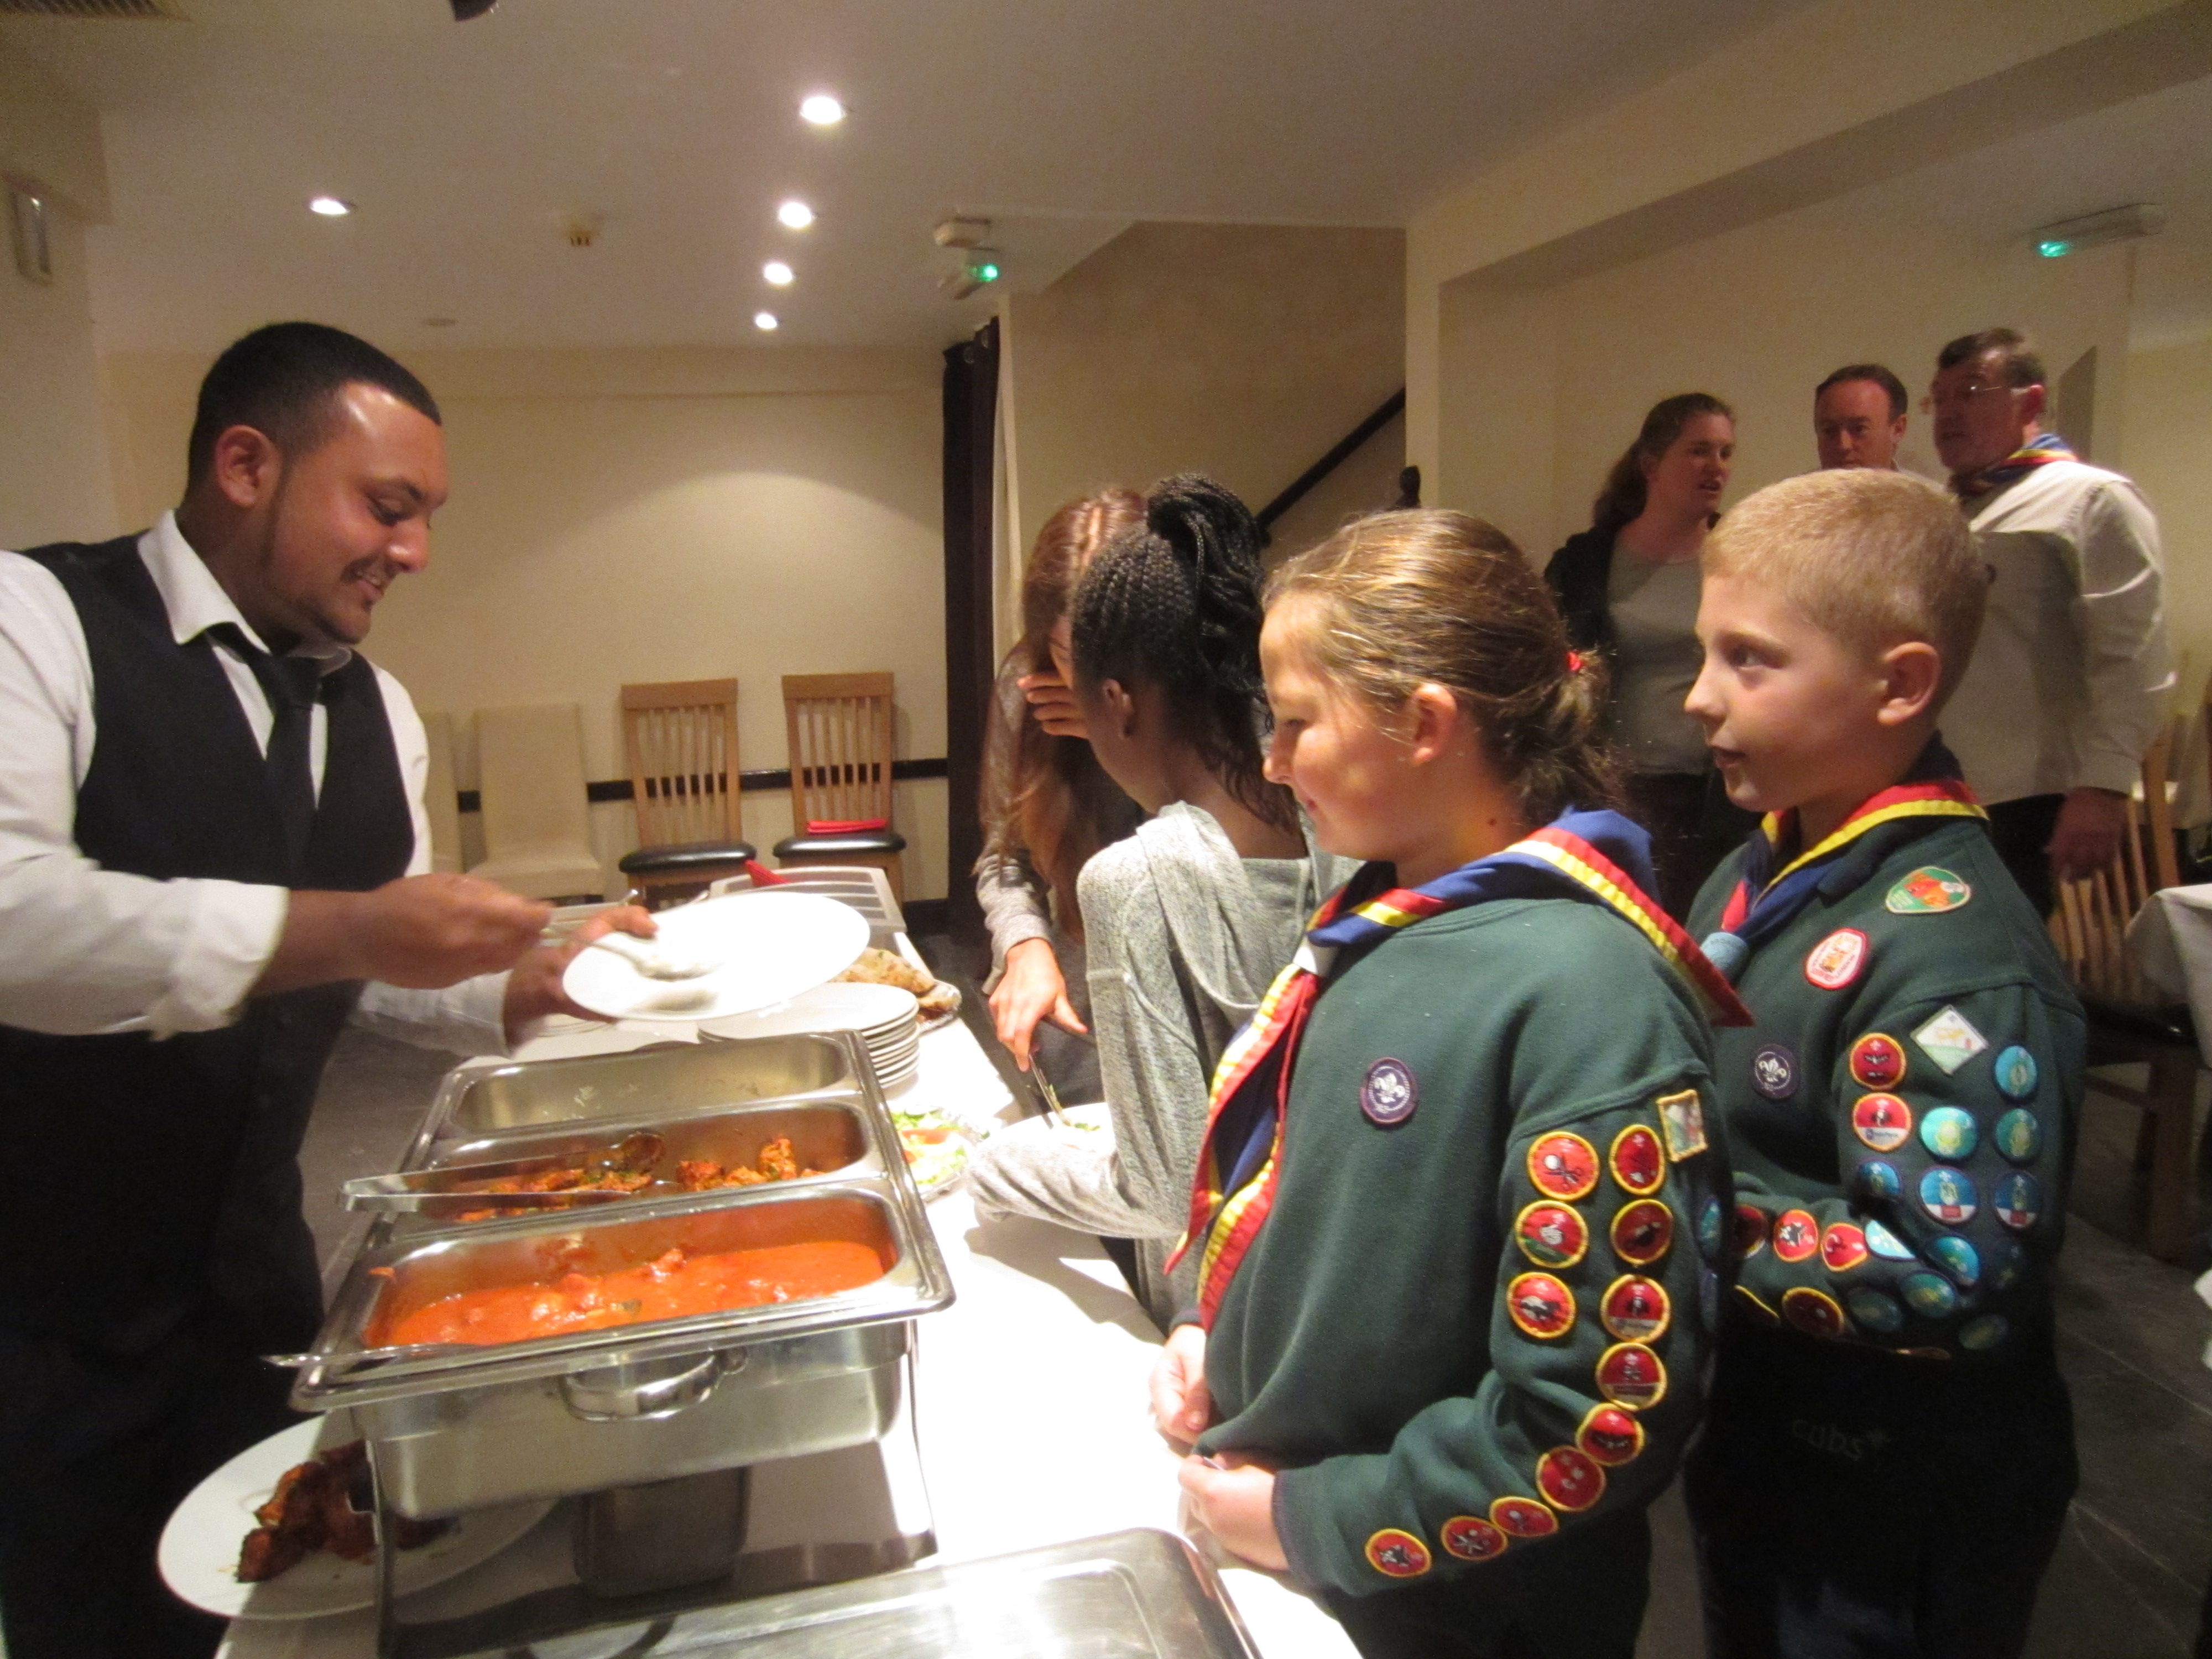 Cubs get to cook up a treat at Kenley's Indian restaurant